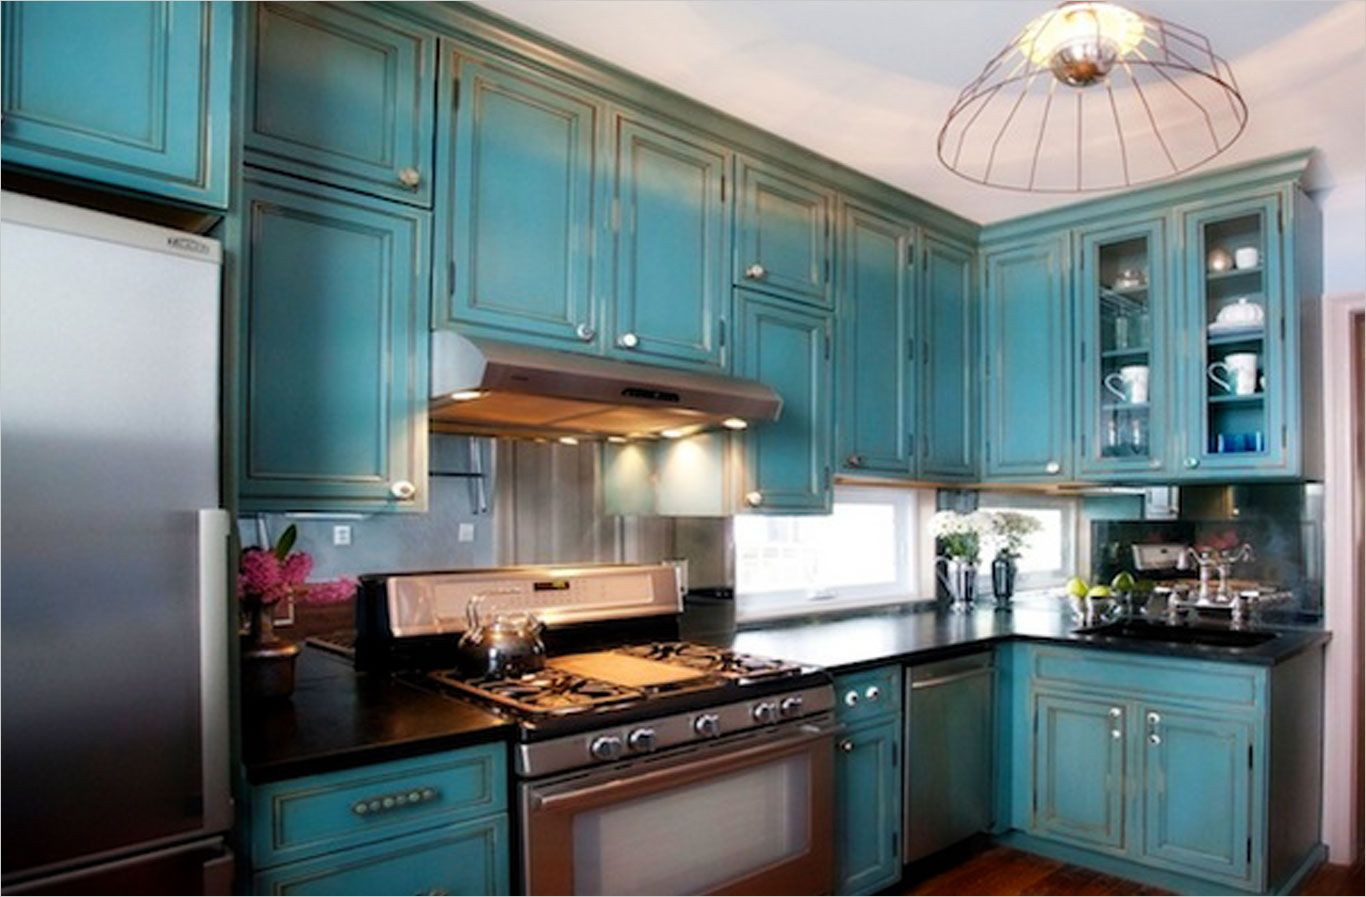 Beautiful Teal Kitchen Cabinets For Kitchen Remodeling Ideas Pendant Lighting With Teal Distressed Kitchen Cabinets Distressed Kitchen Black Kitchen Cabinets